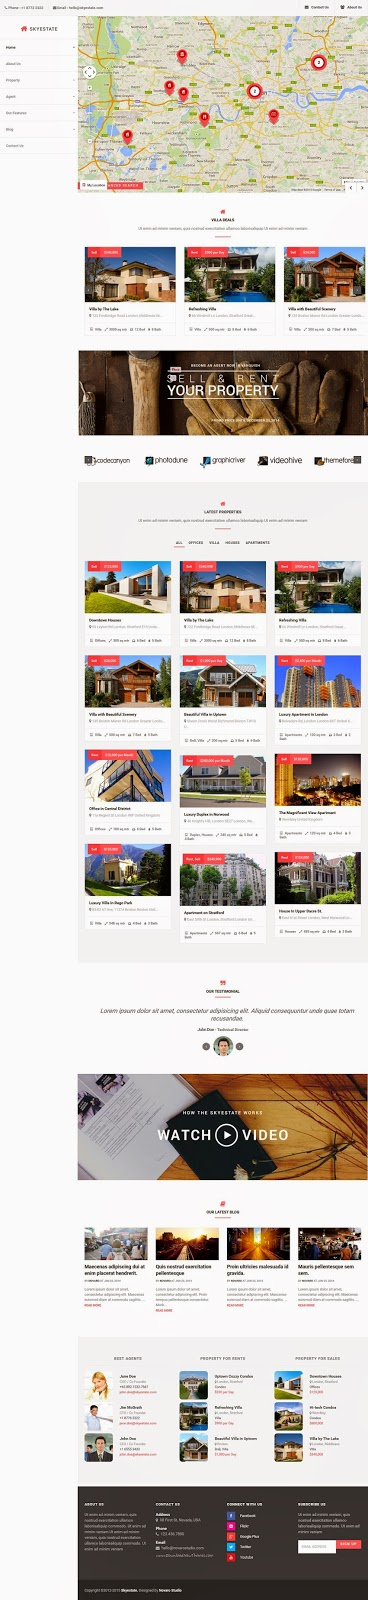 Free Real Estate WordPress Theme 2015